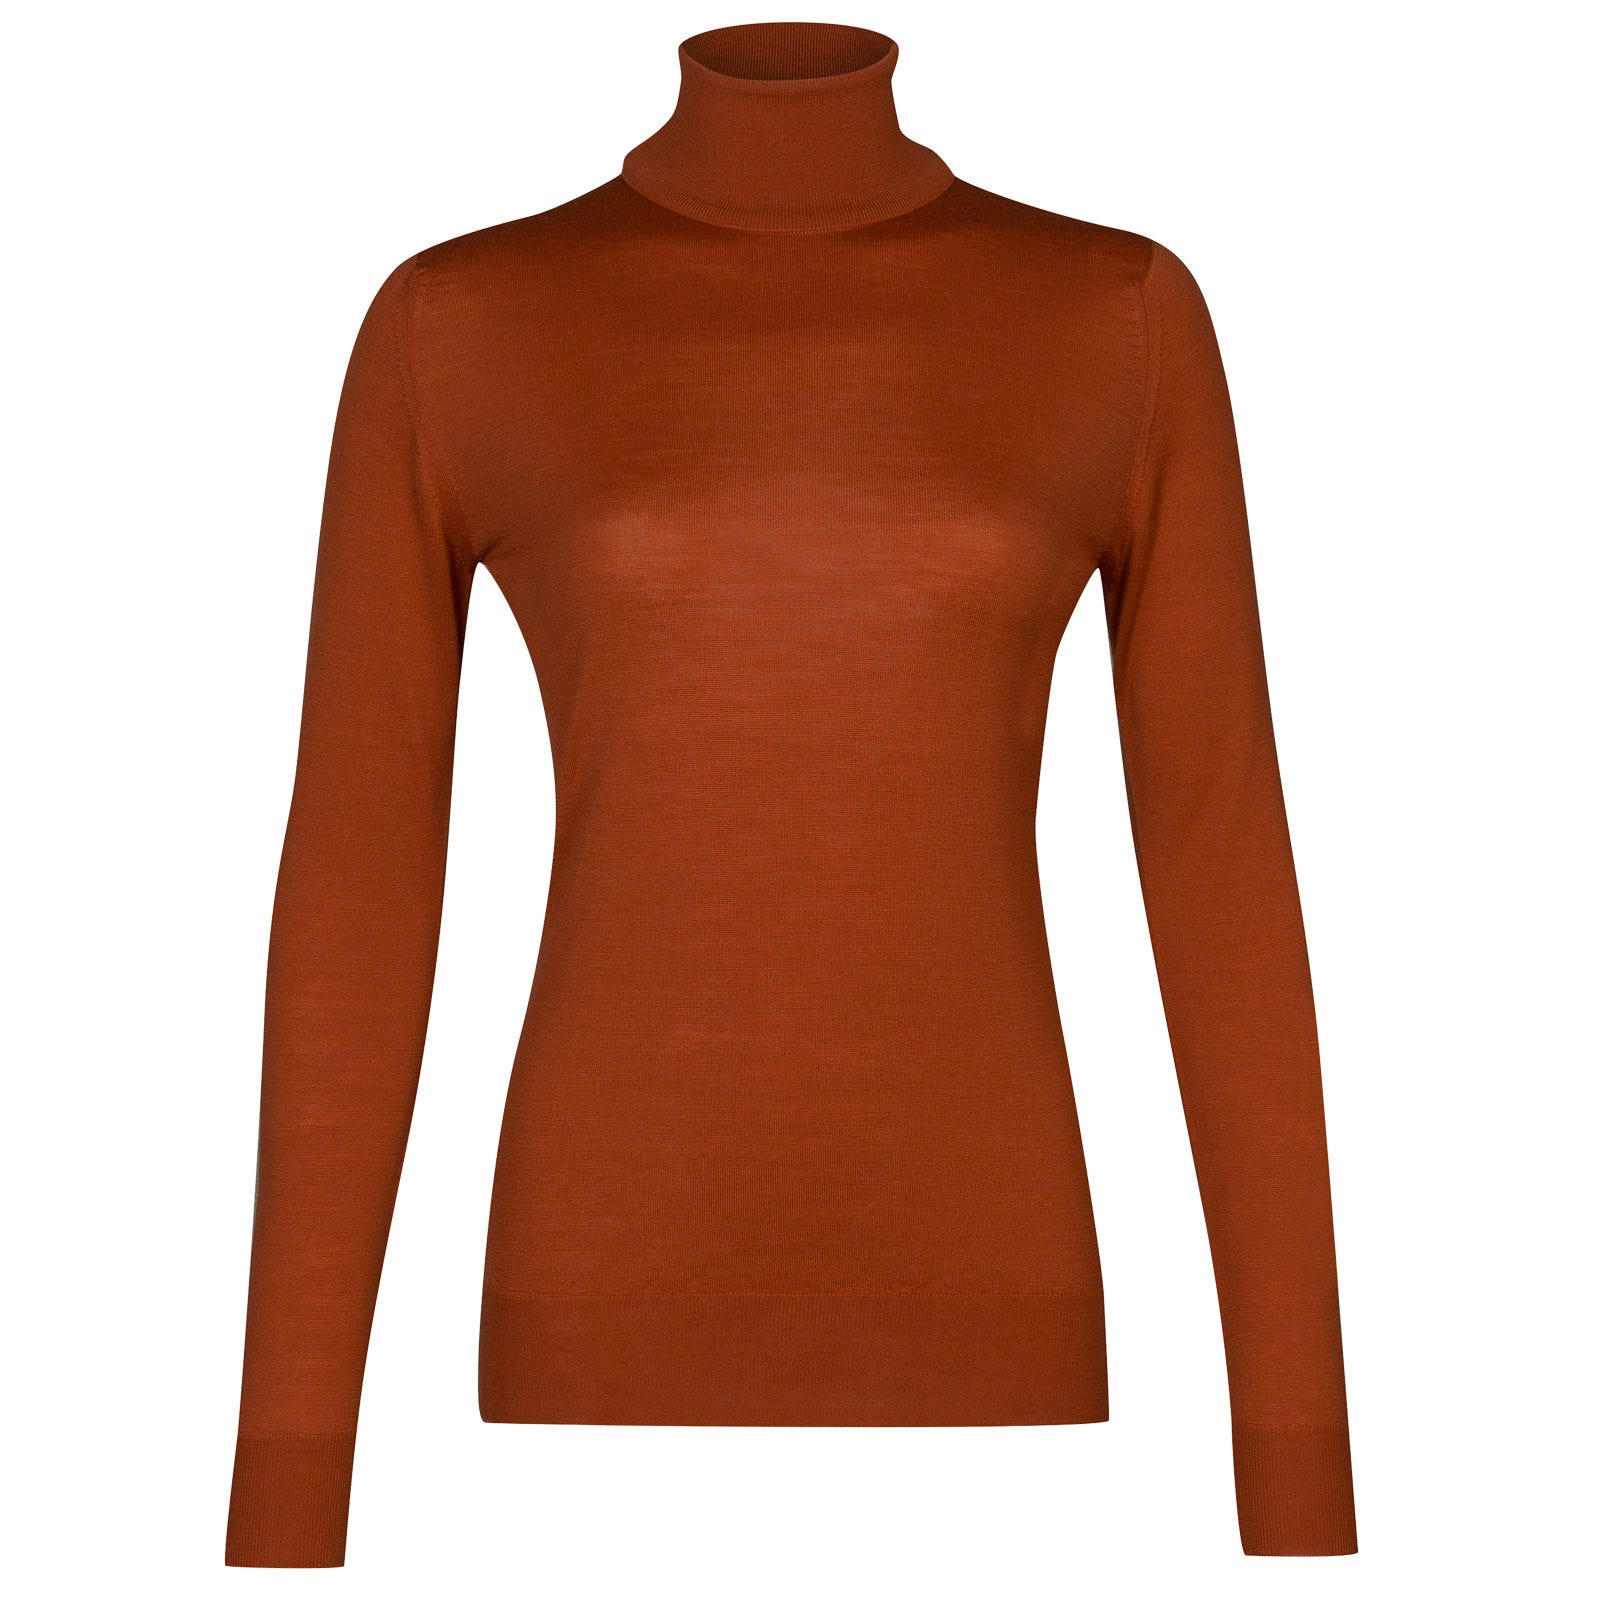 John Smedley Catkin Merino Wool Sweater in Flare Orange-M